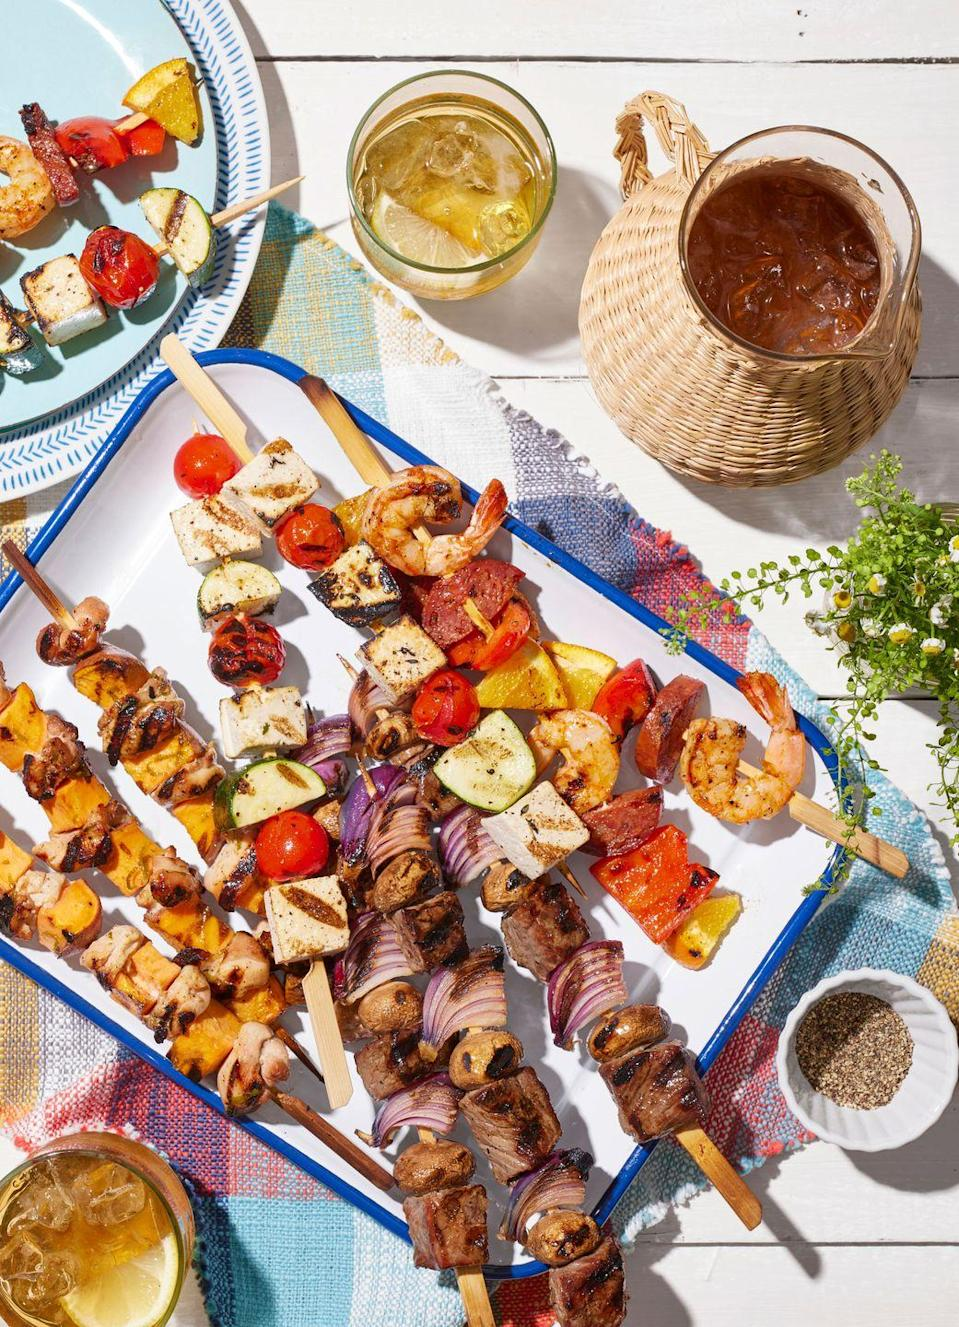 """<p>There's a reason kebabs are such a hit. Who doesn't love bite-sized bits of perfectly seasoned, well-grilled food on a stick? Here, we've got four different pairings of kebabs that will grill well together, from steak and onion to tofu and cherry tomato.</p><p><strong><a href=""""https://www.countryliving.com/food-drinks/a36743130/shrimp-pepper-and-chorizo-kebabs-recipe/"""" rel=""""nofollow noopener"""" target=""""_blank"""" data-ylk=""""slk:Get the recipe for Shrimp, Pepper, and Chorizo Kebabs"""" class=""""link rapid-noclick-resp"""">Get the recipe for Shrimp, Pepper, and Chorizo Kebabs</a>.<br></strong></p><p><strong><a href=""""https://www.countryliving.com/food-drinks/a36743231/tofu-tomato-and-zucchini-kebabs-recipe/"""" rel=""""nofollow noopener"""" target=""""_blank"""" data-ylk=""""slk:Get the recipe for Tofu, Tomato, and Zucchini Kebabs"""" class=""""link rapid-noclick-resp"""">Get the recipe for Tofu, Tomato, and Zucchini Kebabs</a>.<br></strong></p><p><strong><a href=""""https://www.countryliving.com/food-drinks/a36743354/teriyaki-beef-and-mushroom-kebabs-recipe/"""" rel=""""nofollow noopener"""" target=""""_blank"""" data-ylk=""""slk:Get the recipe for Teriyaki Beef-and-Mushroom Kebabs"""" class=""""link rapid-noclick-resp"""">Get the recipe for Teriyaki Beef-and-Mushroom Kebabs</a>.</strong></p><p><strong><a href=""""https://www.countryliving.com/food-drinks/a36742999/chicken-and-sweet-potato-kebabs-recipe/"""" rel=""""nofollow noopener"""" target=""""_blank"""" data-ylk=""""slk:Get the recipe for Chicken and Sweet Potato Kebabs"""" class=""""link rapid-noclick-resp"""">Get the recipe for Chicken and Sweet Potato Kebabs</a>.</strong><br></p>"""